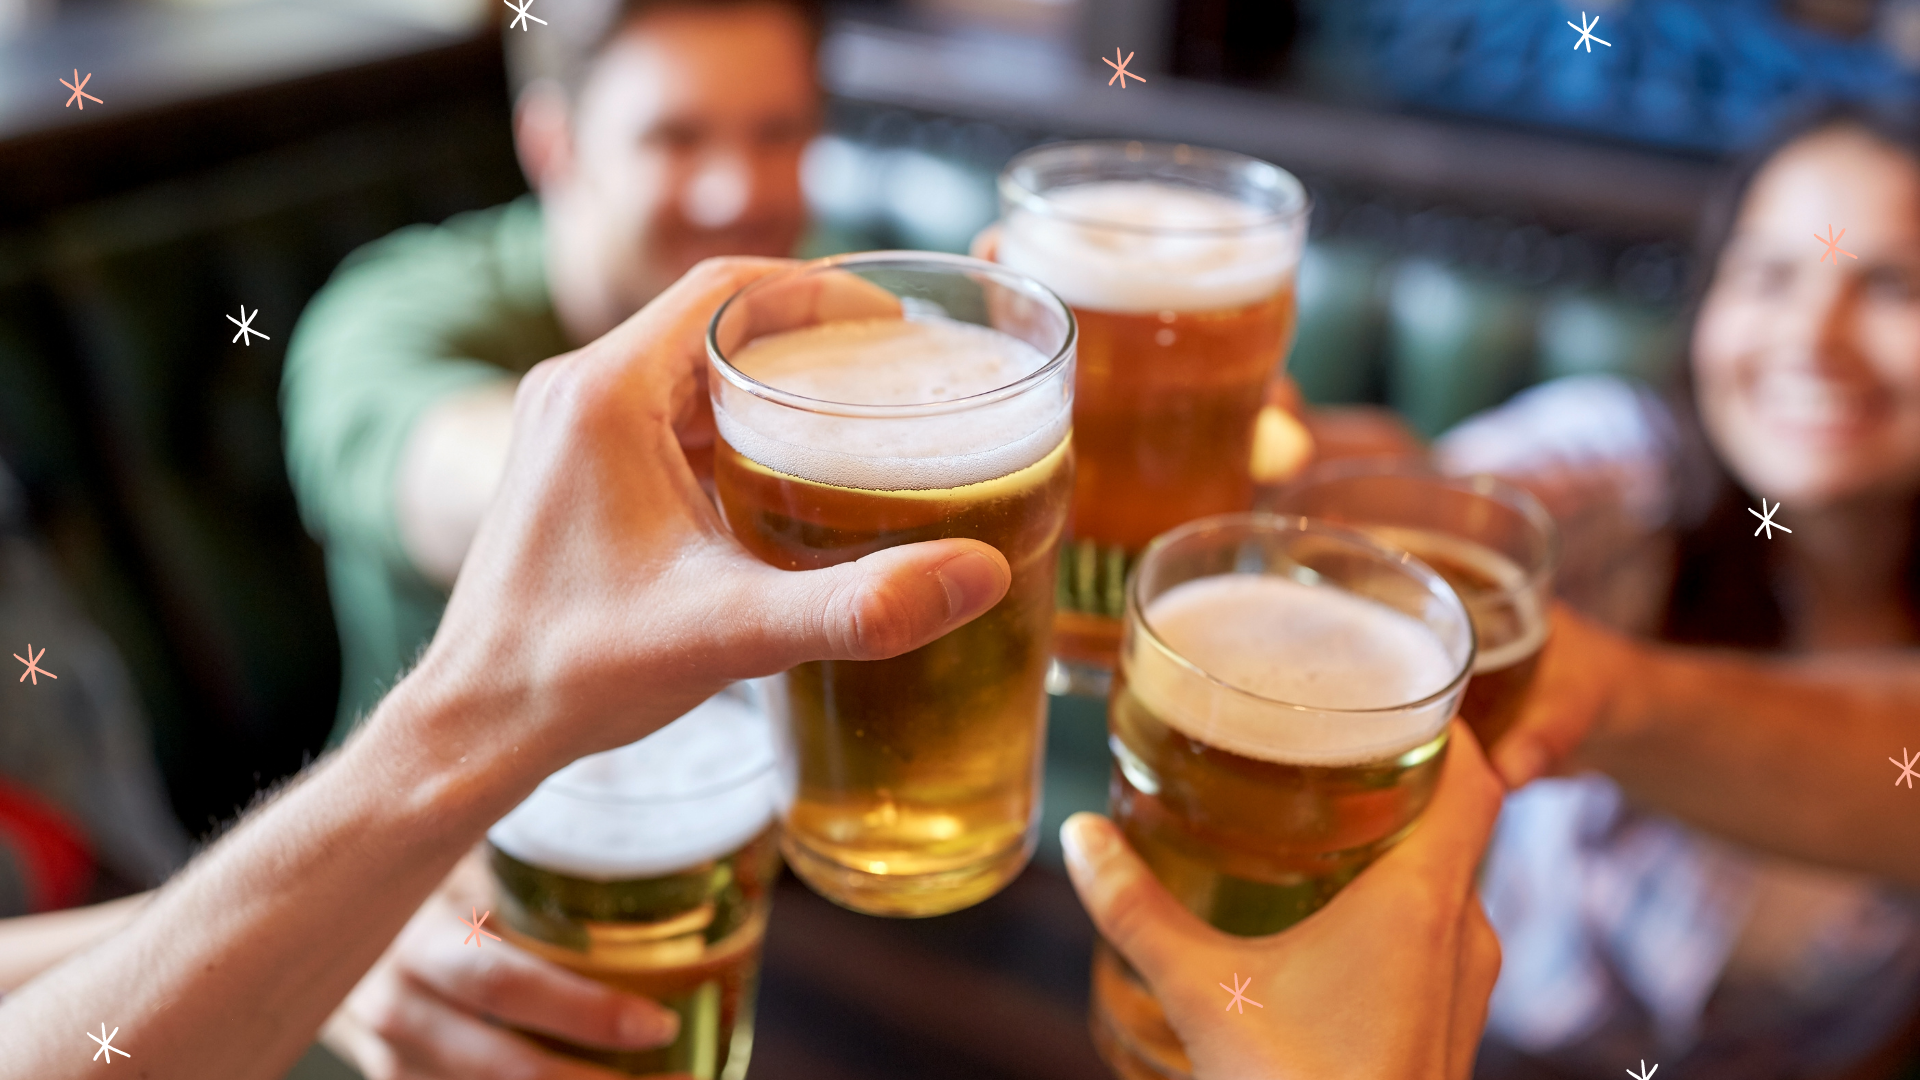 Is the next must have employee incentive a trip to the pub?